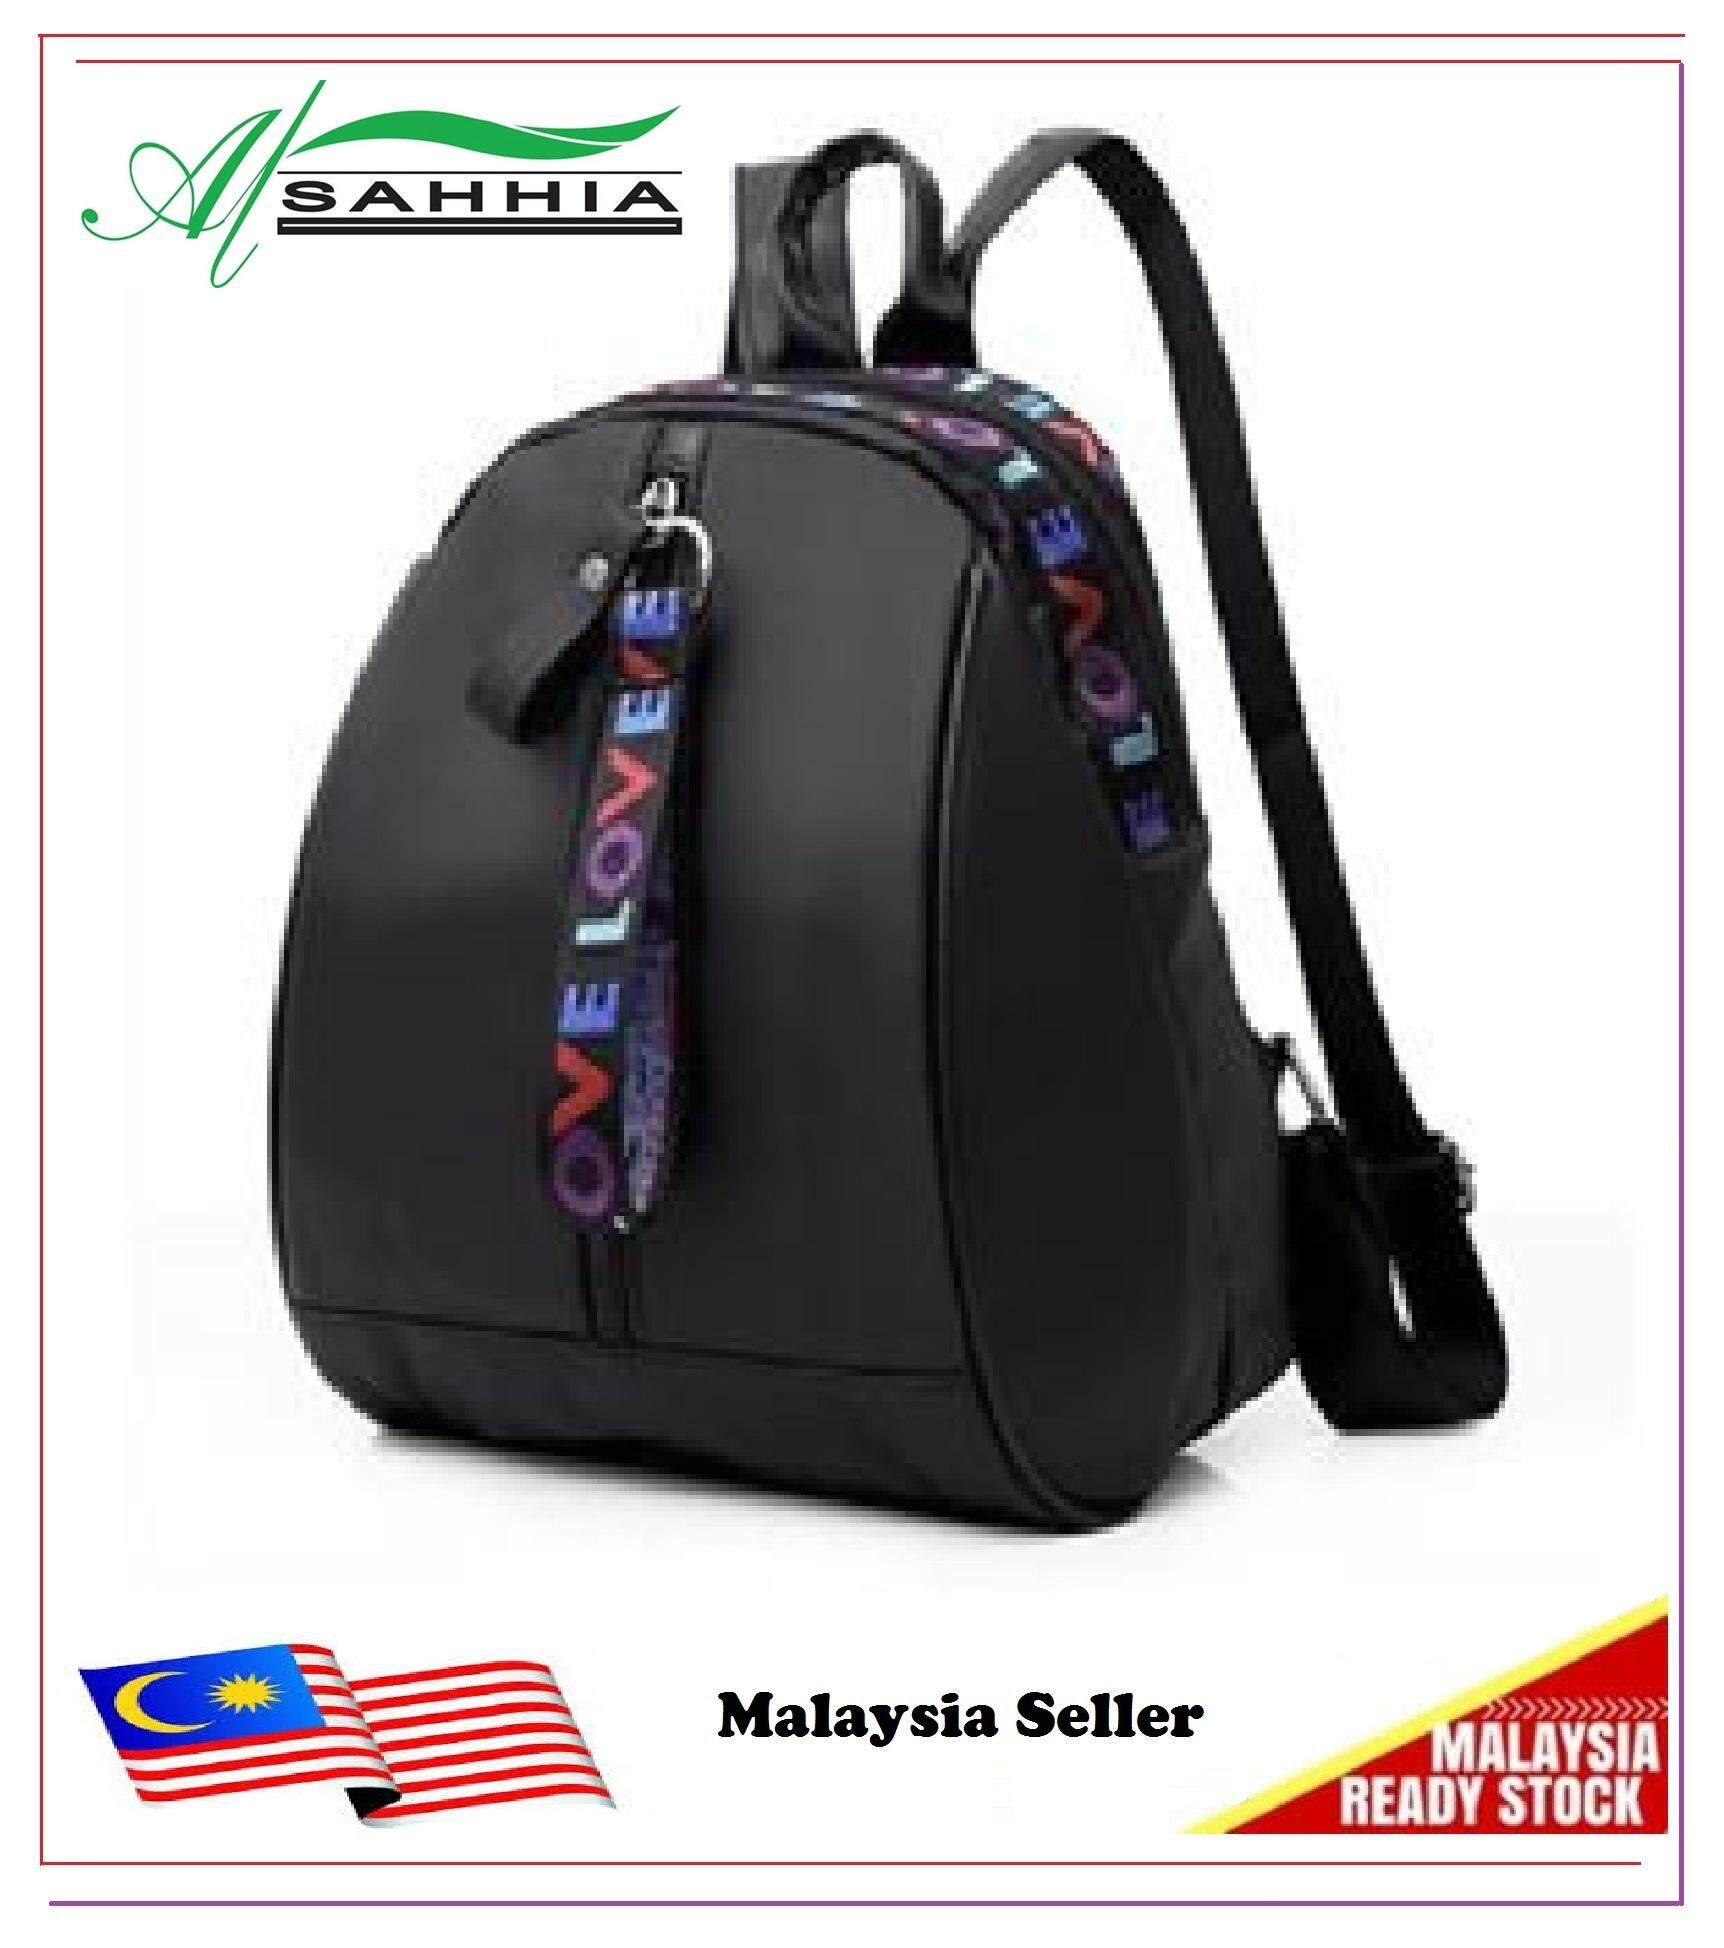 bdf50fcf18be Al Sahhia Ready Stock Fashion Women Nylon Backpack Waterproof Large Special  Zip